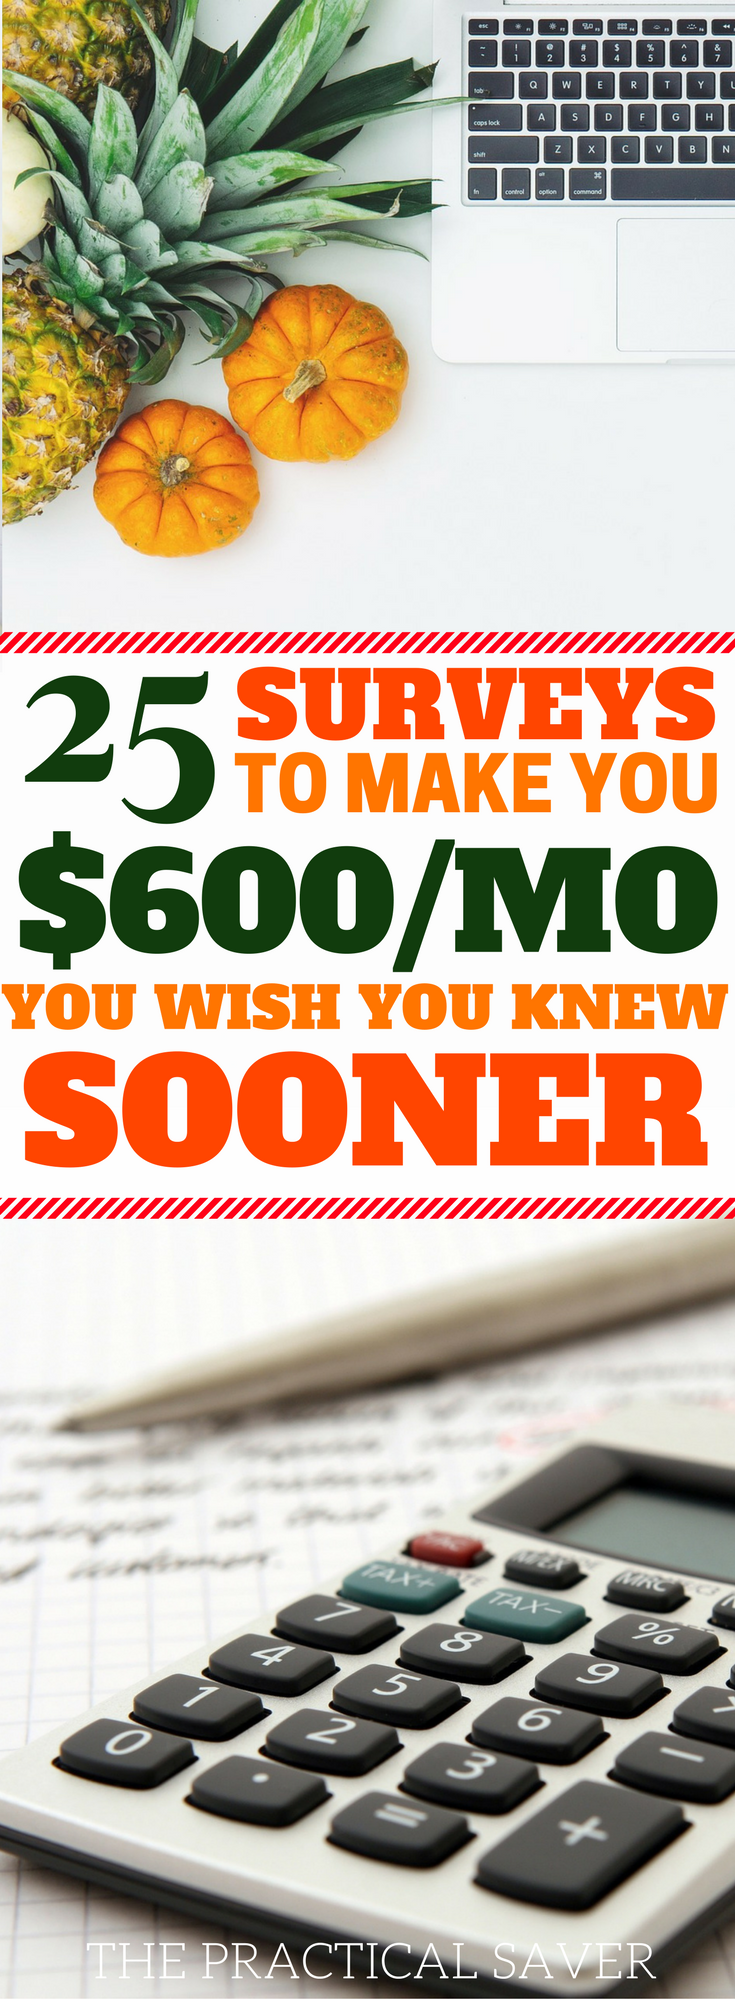 survey sites l passive income ideas l side hustles l work from home l part-time jobs l make extra money l easy job that pay well l extra money for teens l college tips hacks l  make money online #savemoney #frugalliving